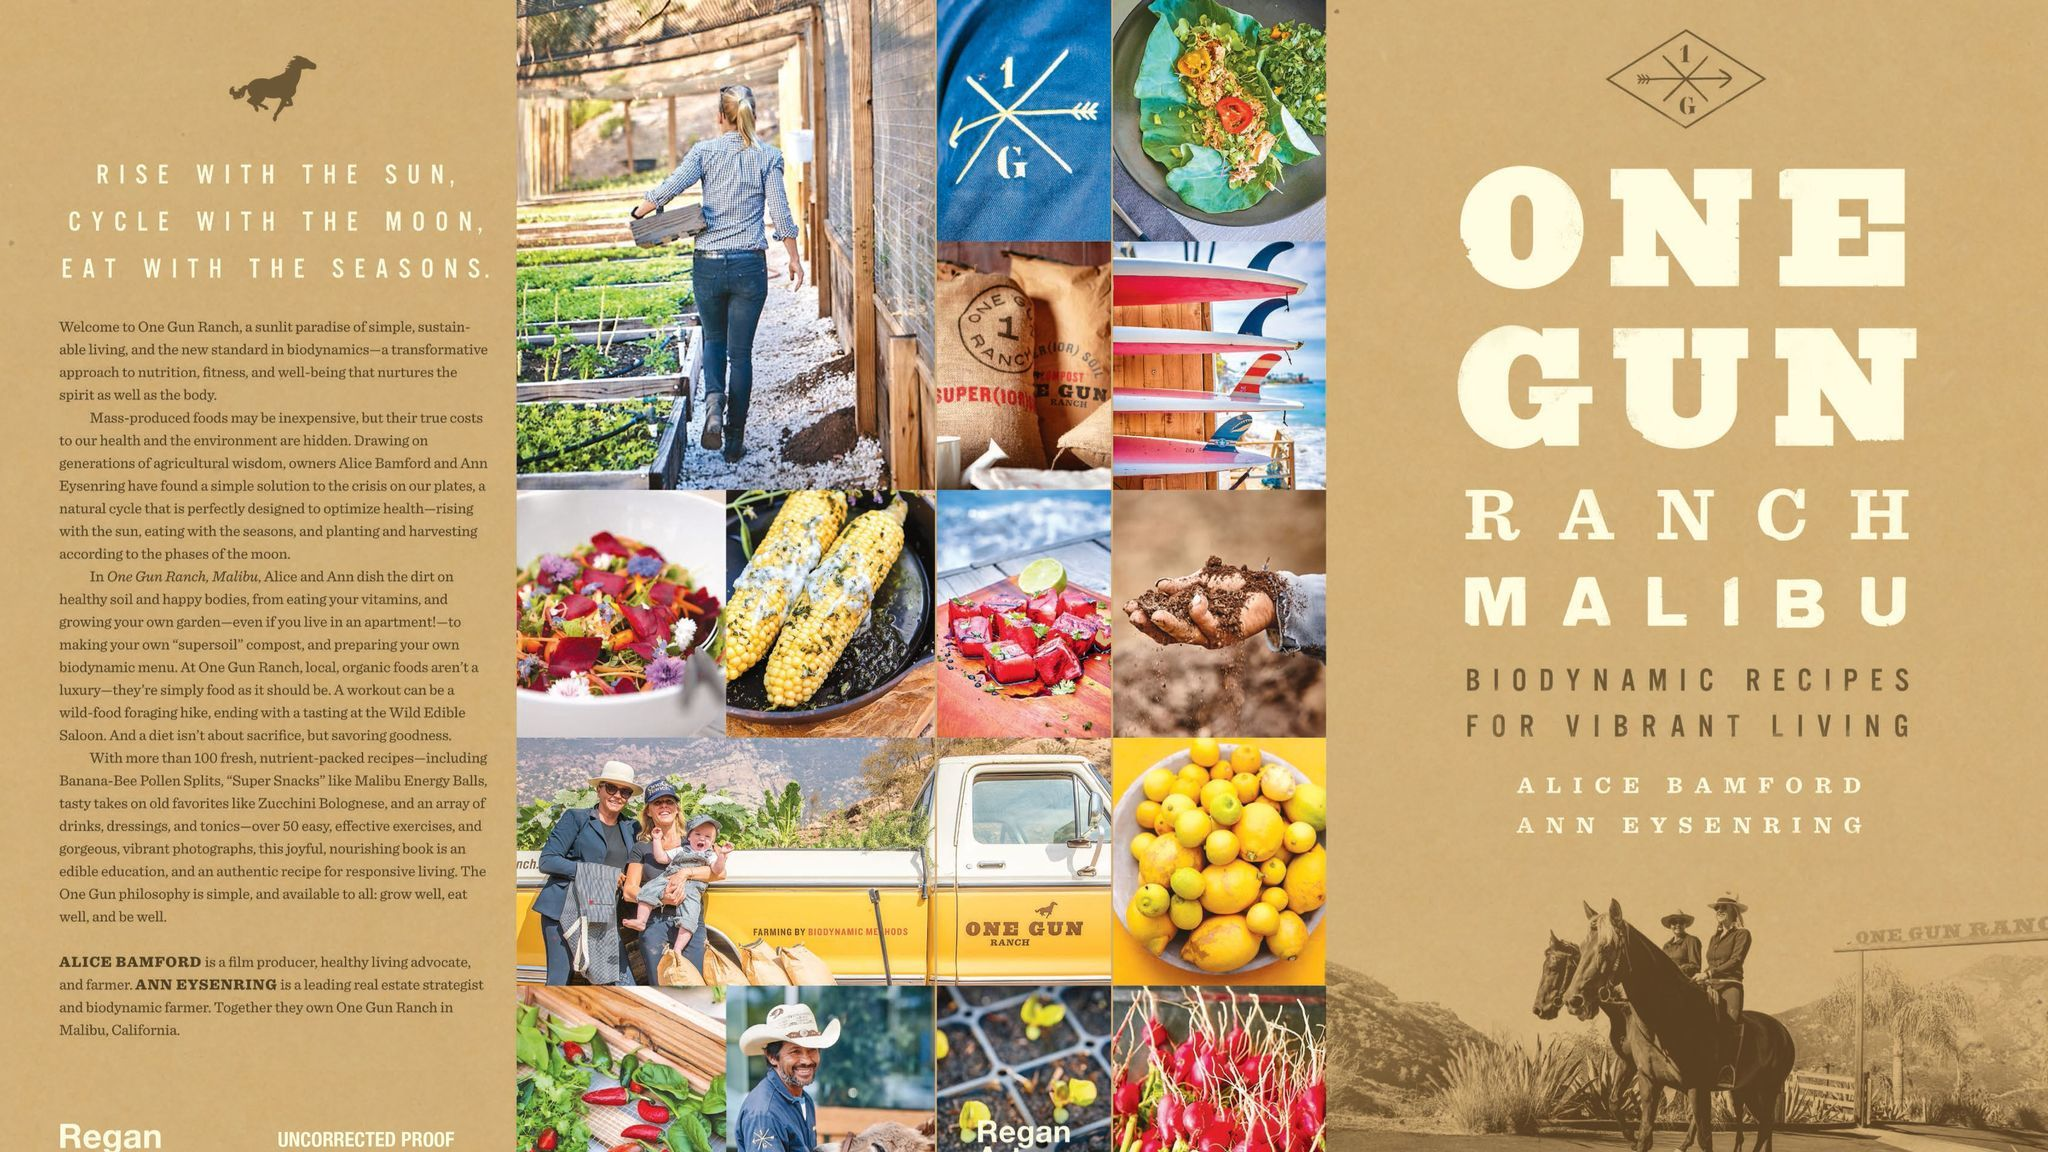 """One Gun Ranch Malibu: Biodynamic Recipes for Vibrant Living"" (Regan Arts, $40)"